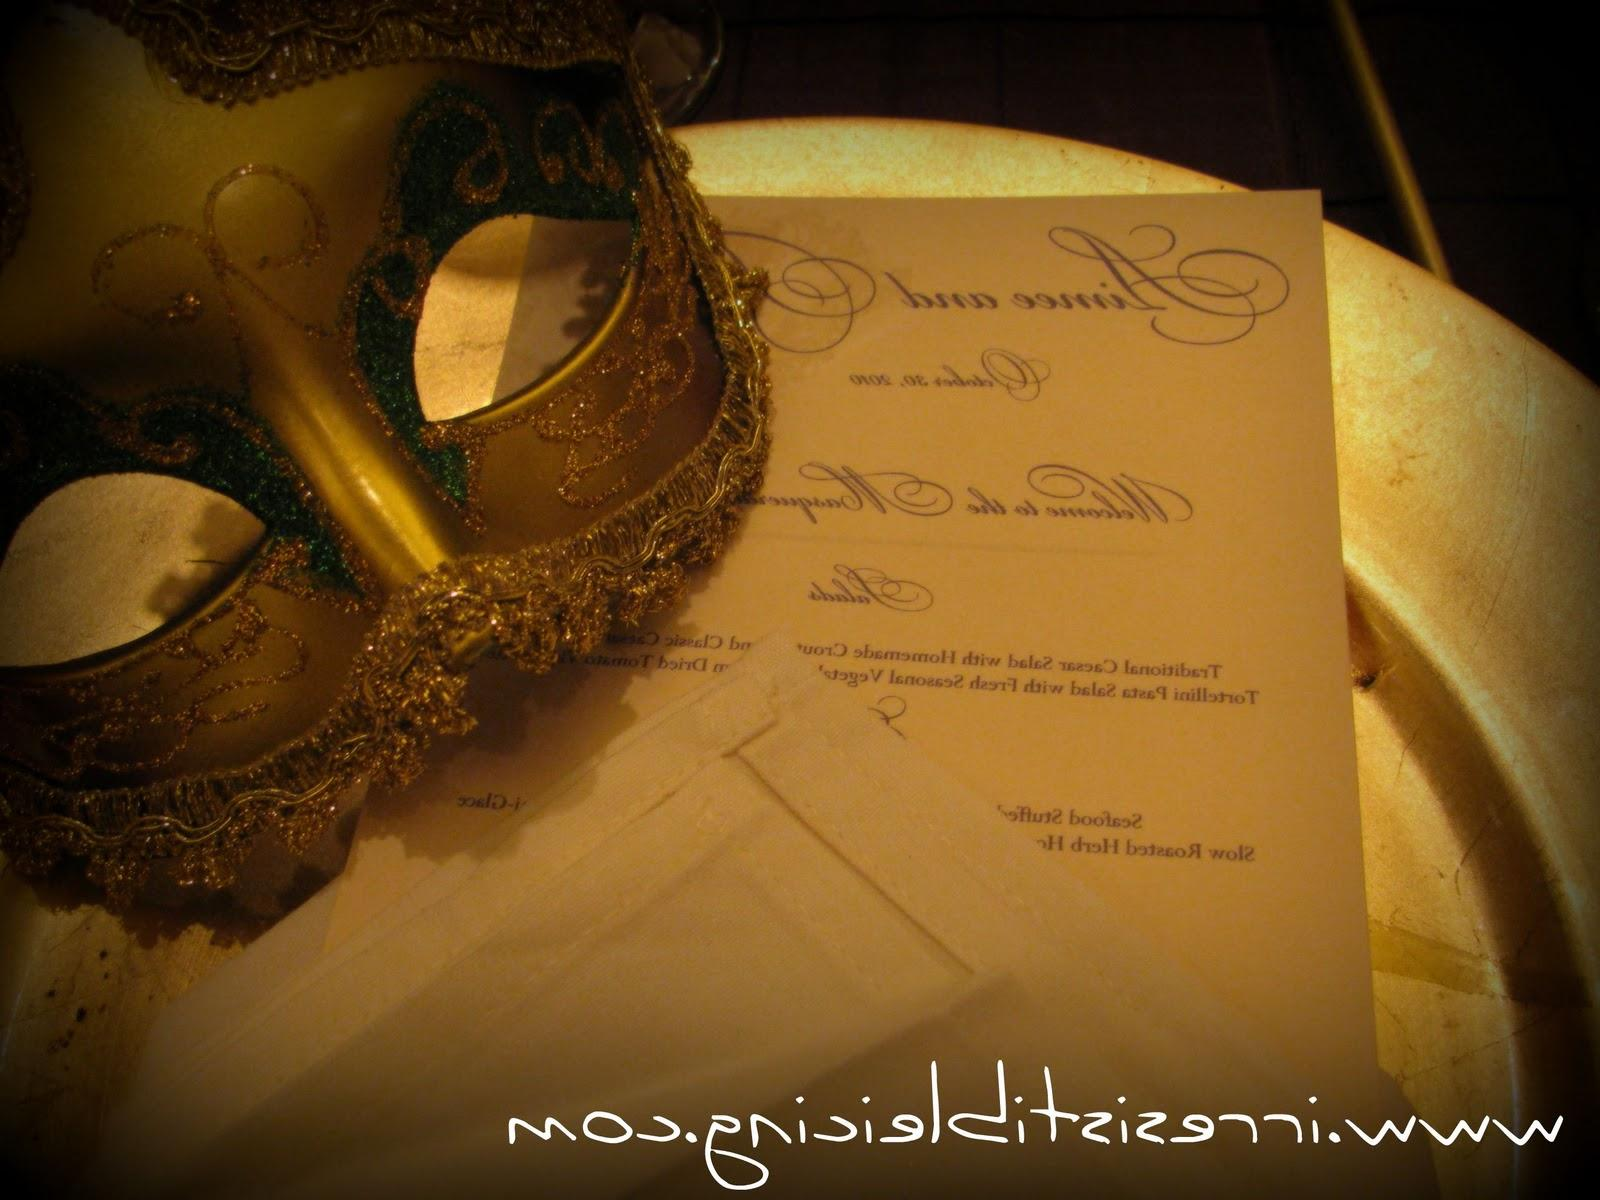 Masquerade Ball reception